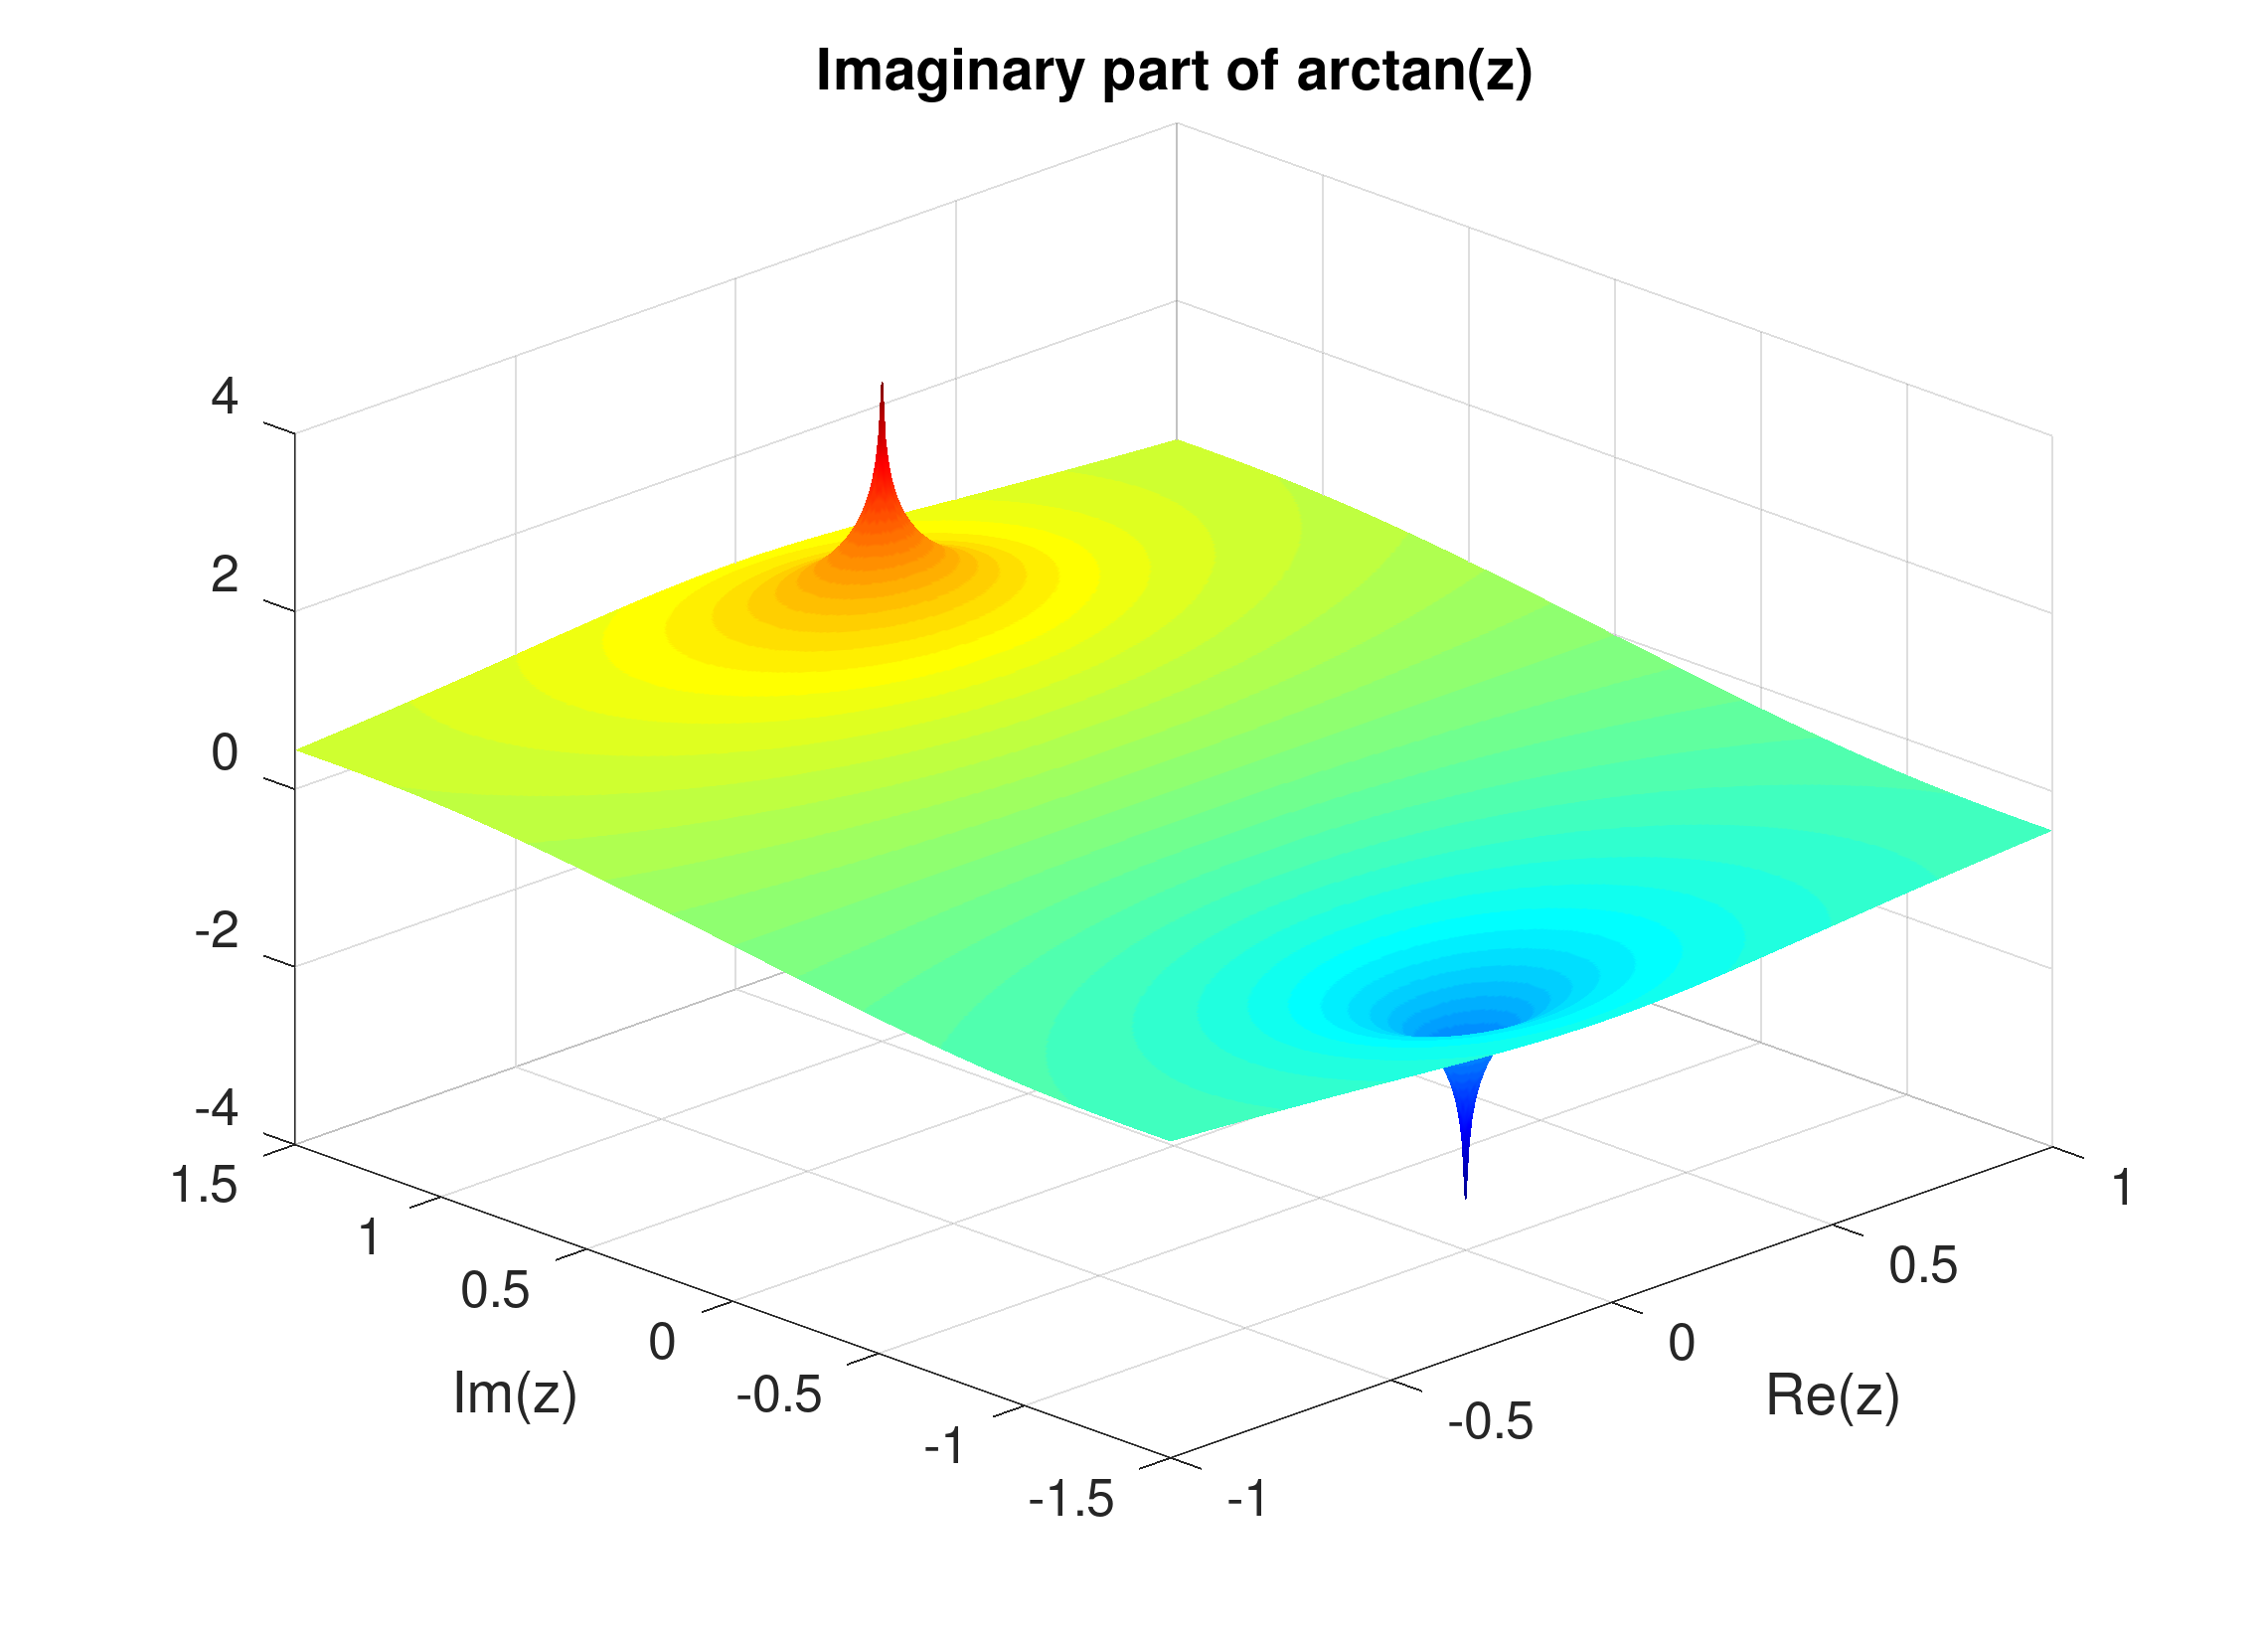 The complex-valued arctan contains singularities at pm i, which gives some intuition of why the series diverges when |x| gt 1.